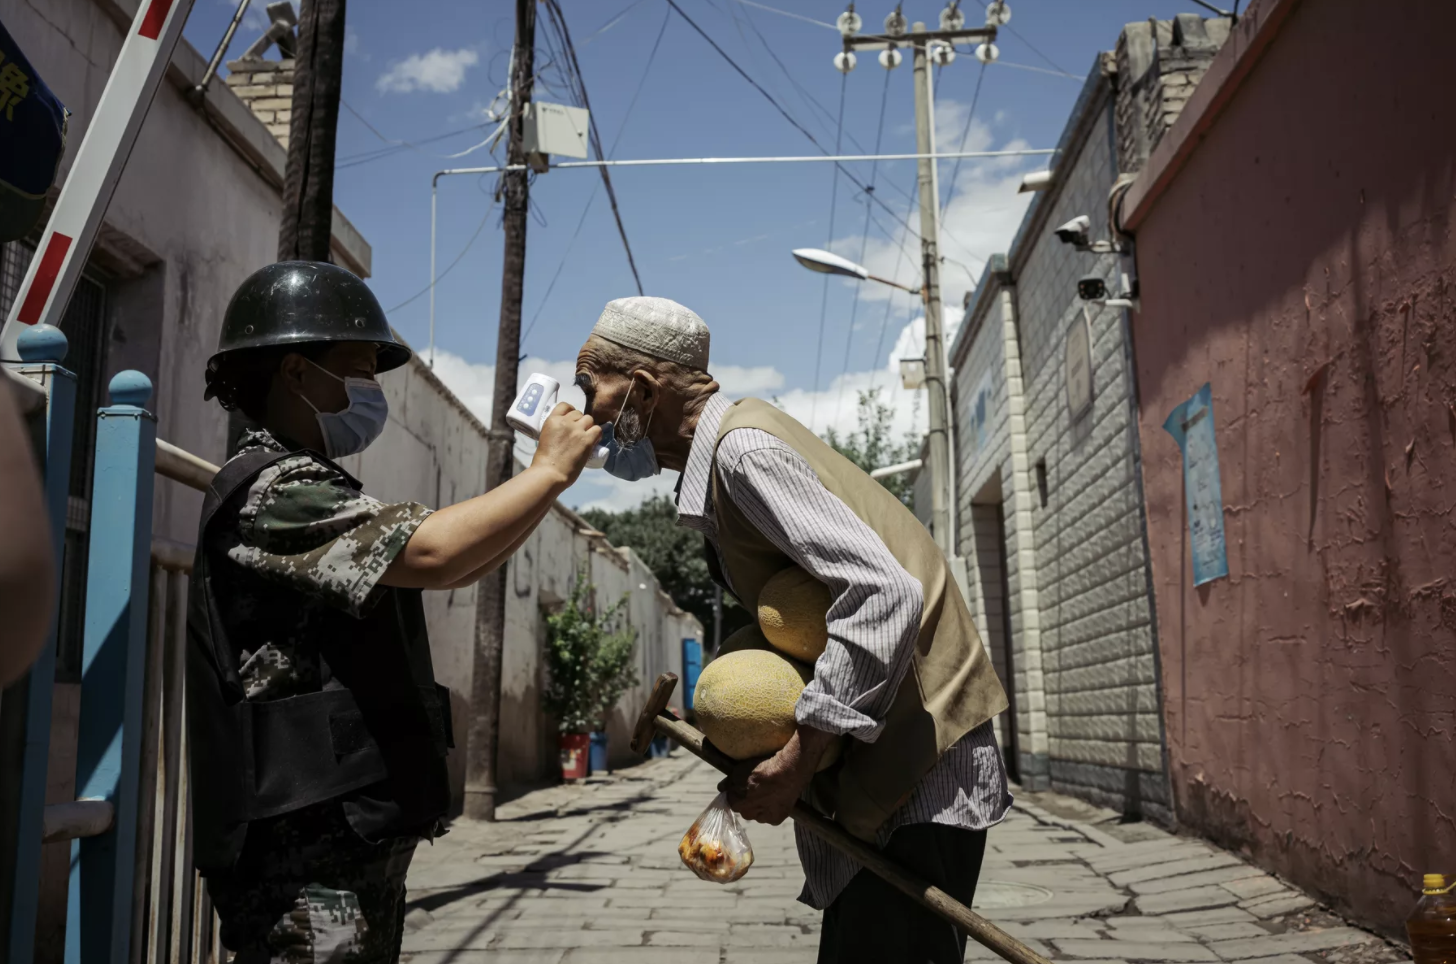 Concentration Camps And Forced Labor: China's Repression Of The Uighurs, Explained